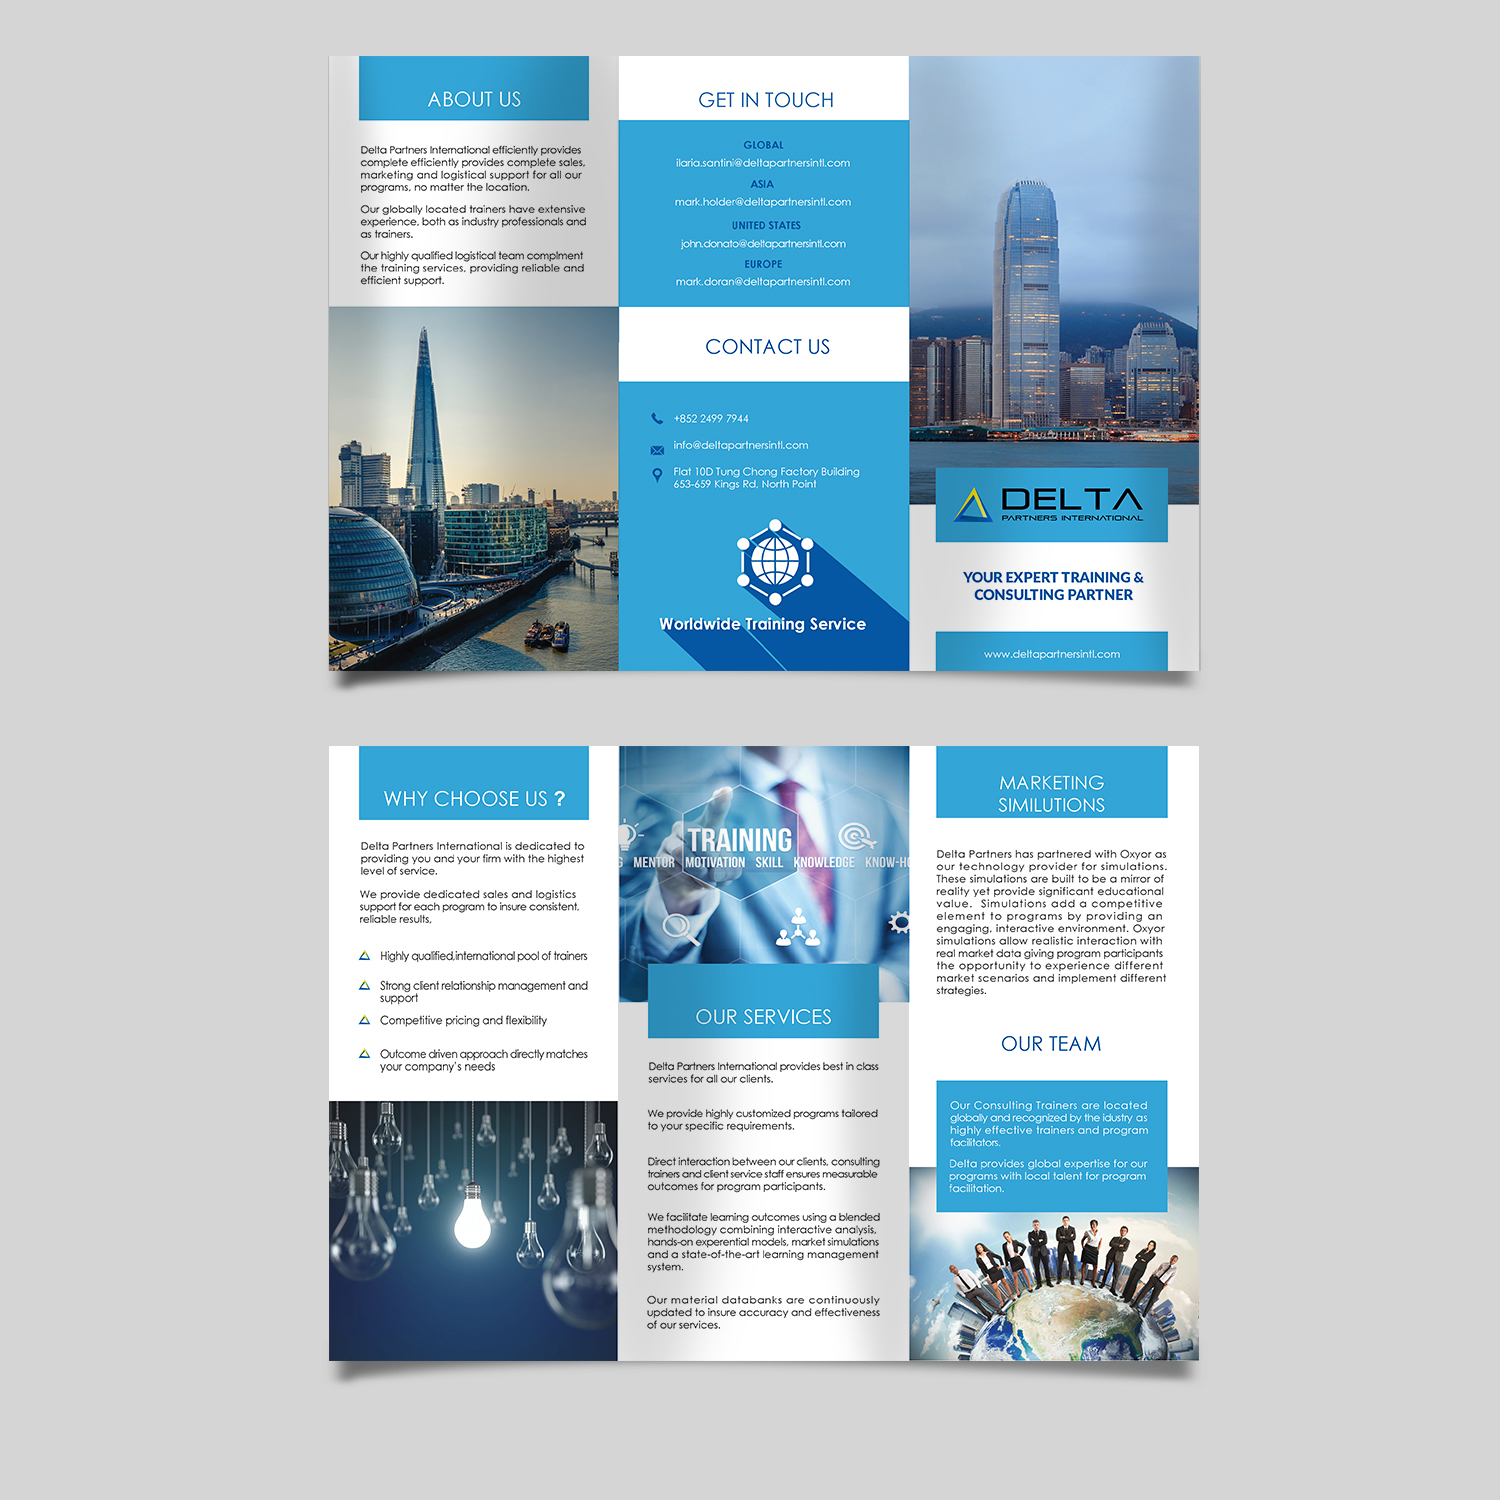 Serious, Professional, Investment Banking Brochure Design for Delta